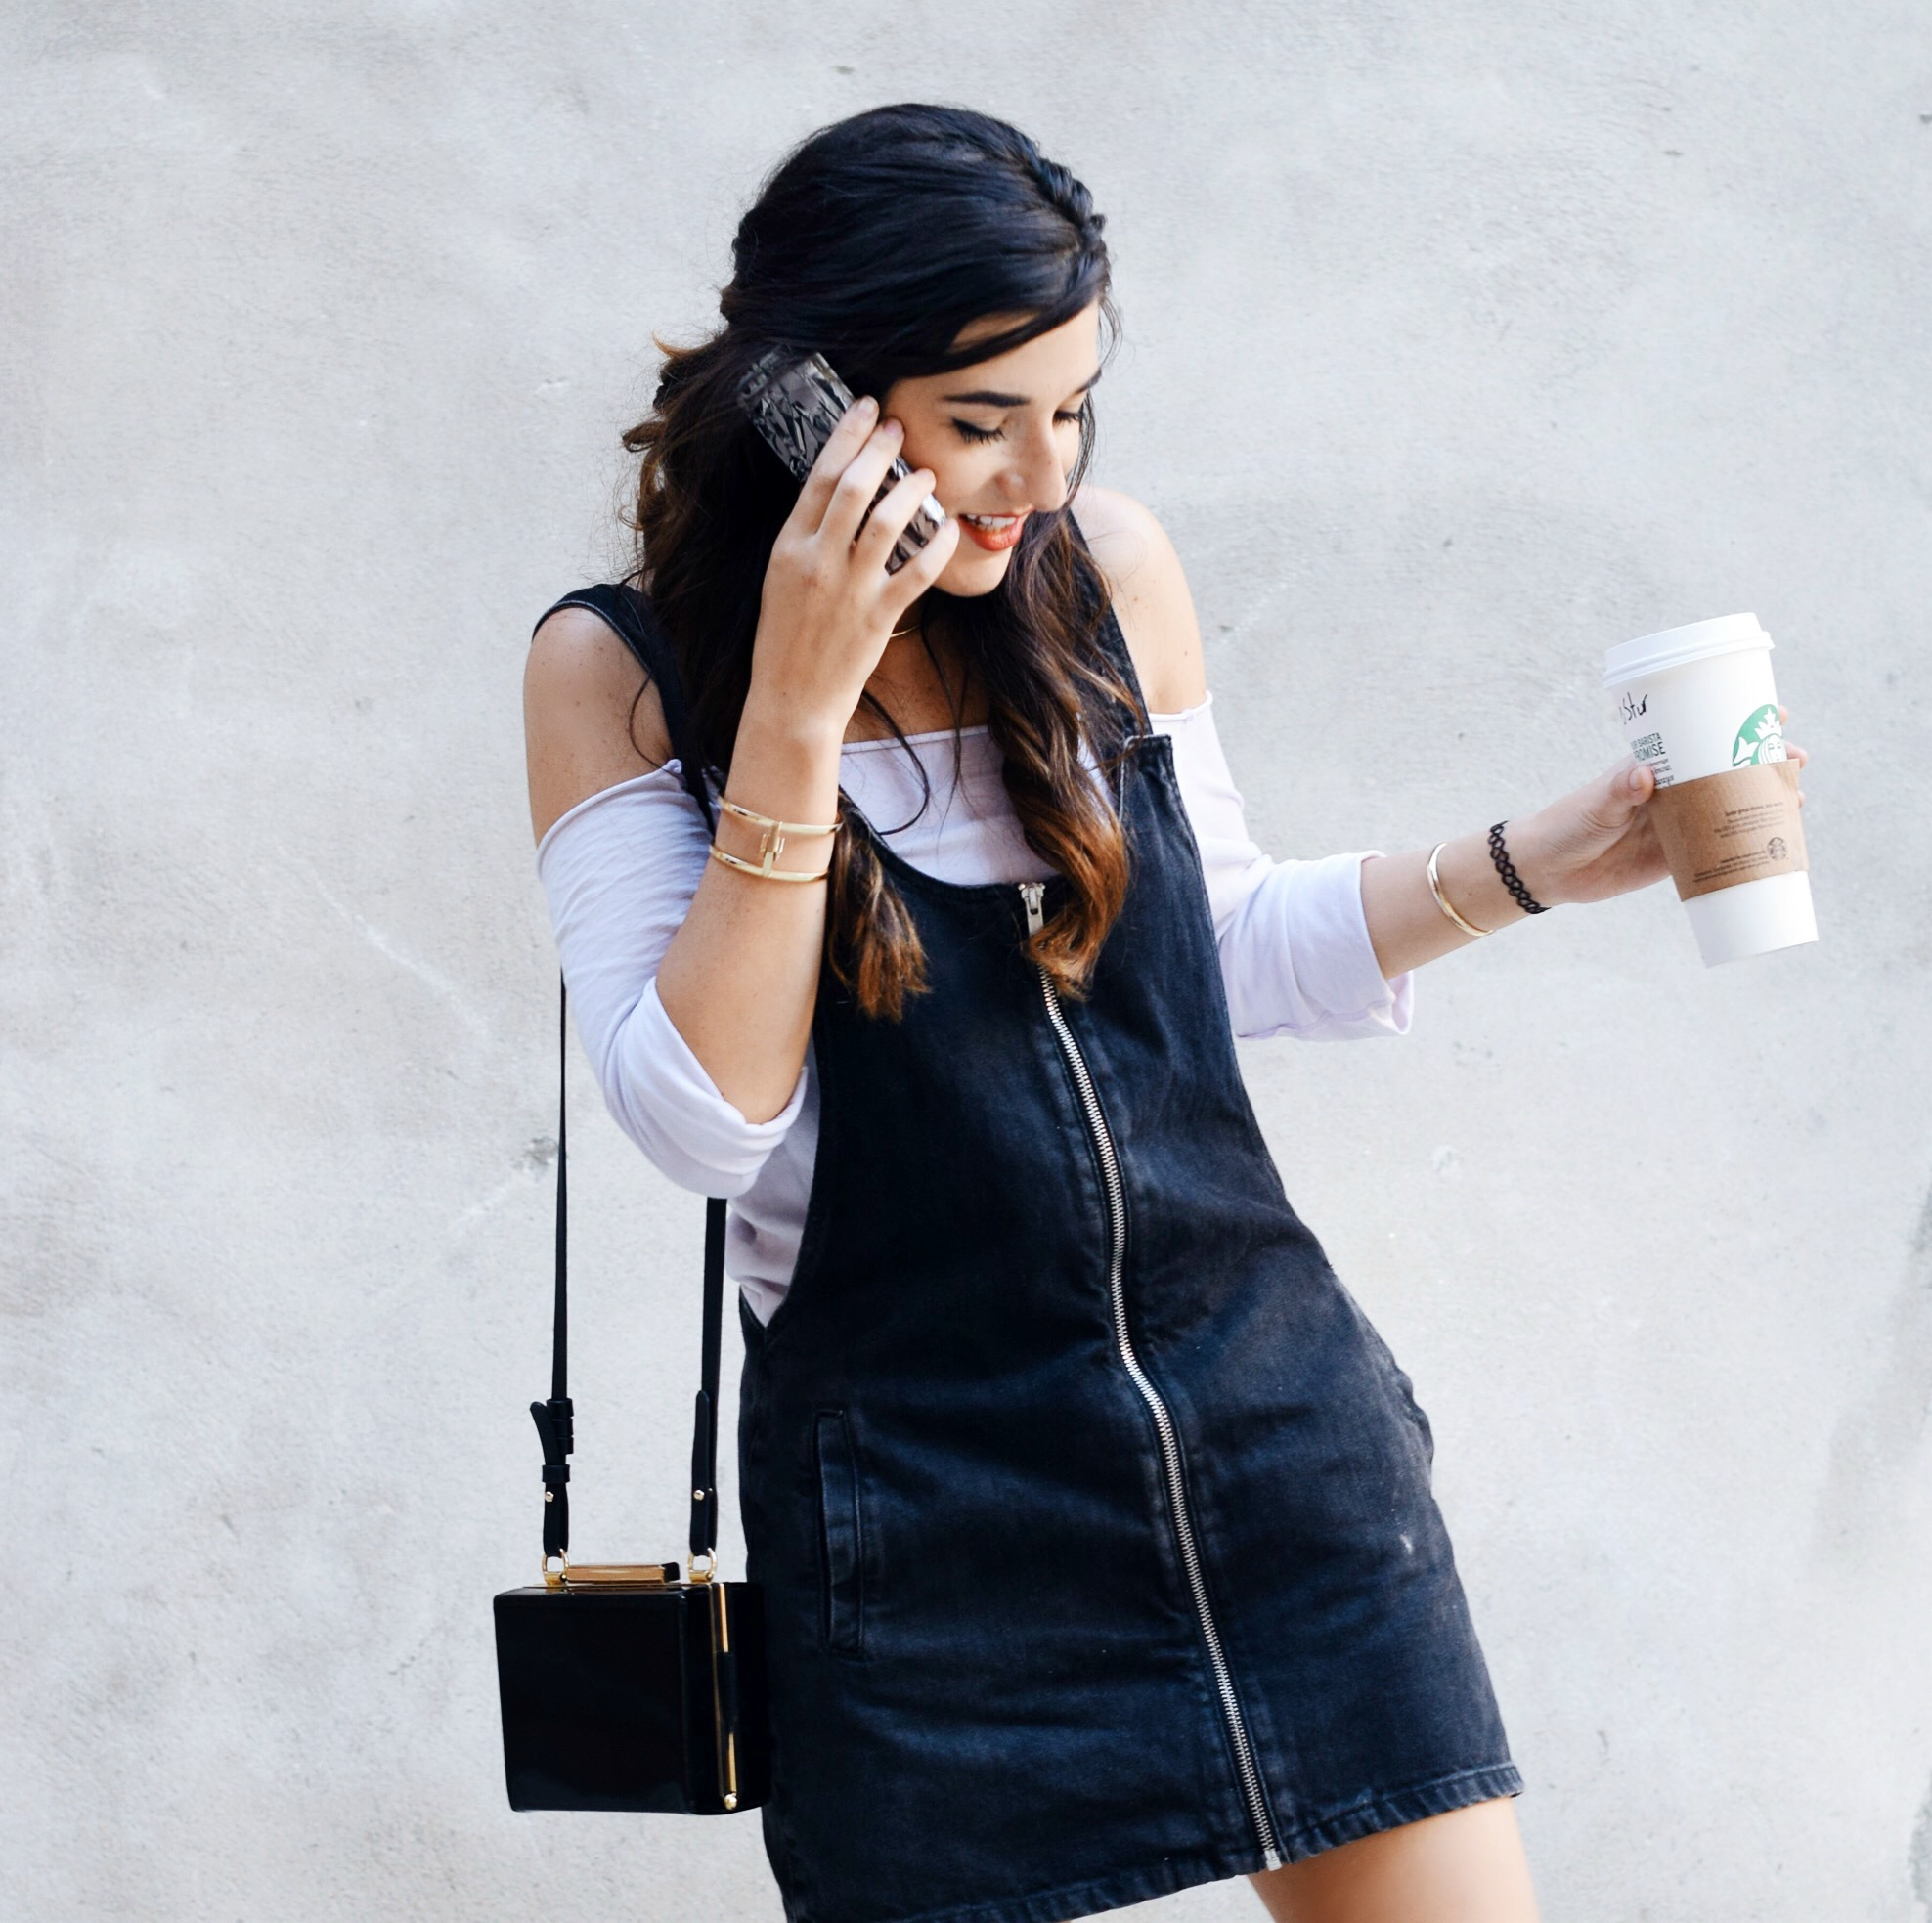 Jean Dress Overalls Off The Shoulder Top Louboutins & Love Fashion Blog Esther Santer Street Style NYC Hair Box Clutch Shoes Denim Gold Jewelry Model Girl Women Zara Trendy Outfit OOTD Bag Collar Necklace Inspo Fall Shop Zipper Black Booties Nordstrom.JPG